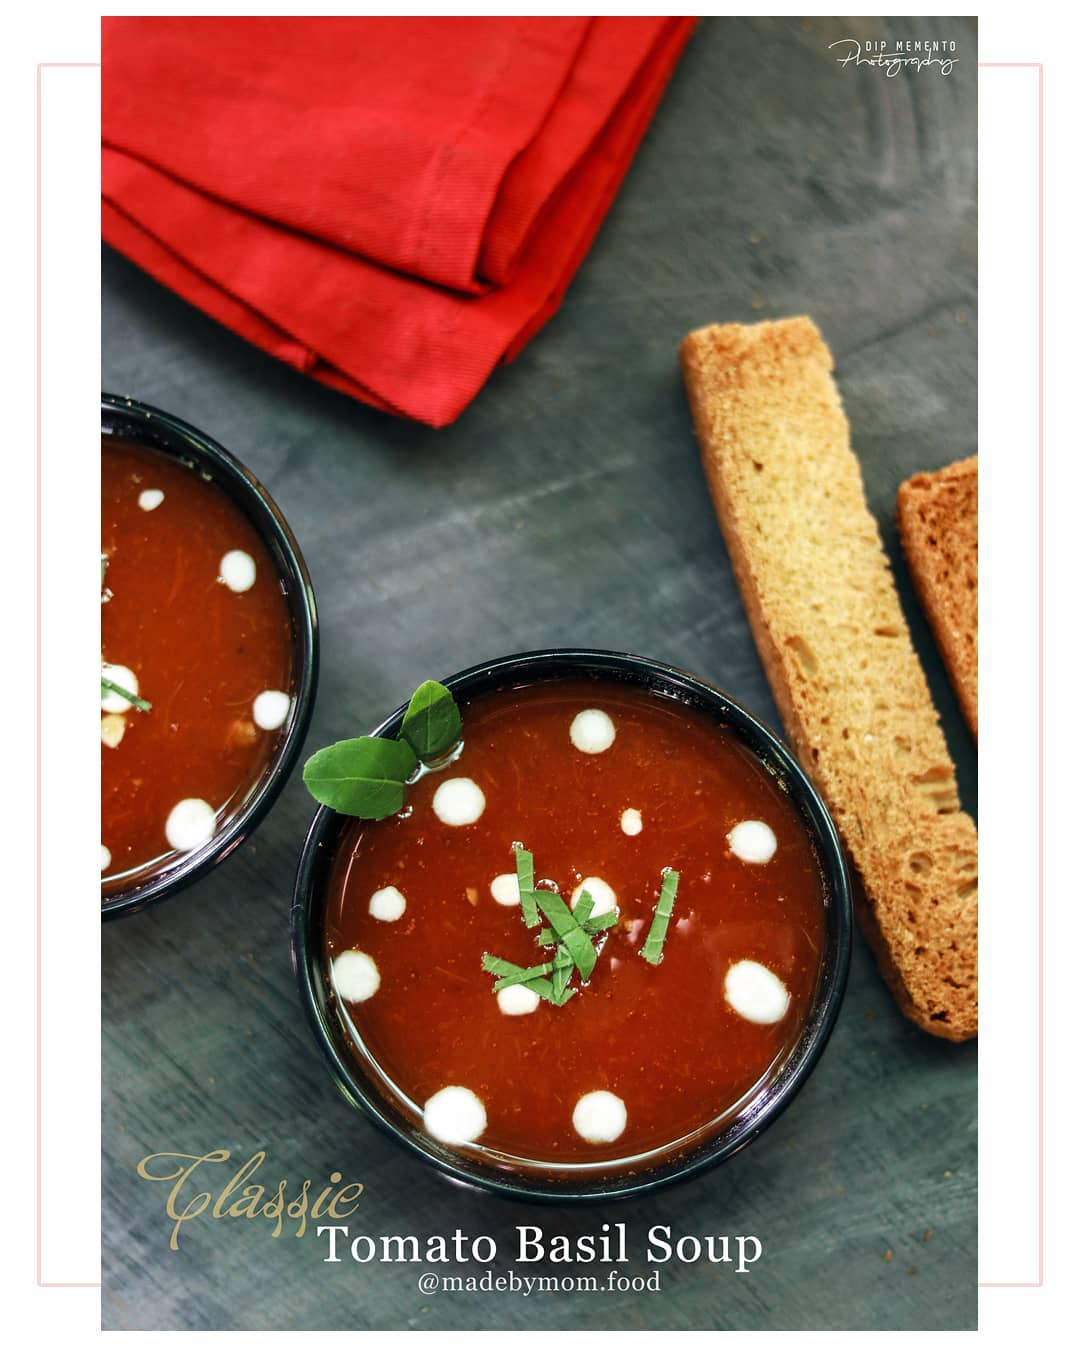 Classic Tomato Basil soup. . . . Full of basil and a hint of garlic, this soup will most likely be on you weekly rotation, no matter the season. I garnished this soup with blistered tomato pieces, shaved parmesan and basil. Make ahead and freeze in advance OR serve immediately. ********************************** From #madebymom #gujjufood @madebymom.food 🌶🌰🌰🌰🌰🍋🍋🍋🥔🥔🌶🌶 Food Shoot : @dip_memento_photography 🥒🥒🍋🍋🍋🥔🥔🌶🌶 #ahmedabad #food #photography #hungrito #foodporn #foodphotography #happymood  #happiness #foodpic #foodoftheday #foodlover #foodie #foodlove #foodporn #hungrito #productPhotography #Productshoot #foodclicks #aighungrito  #fooddi #happyPeople  #picoftheday #photoholic #magazine #magazineshoot  #magazinephotography #ahmedabadifoodholics